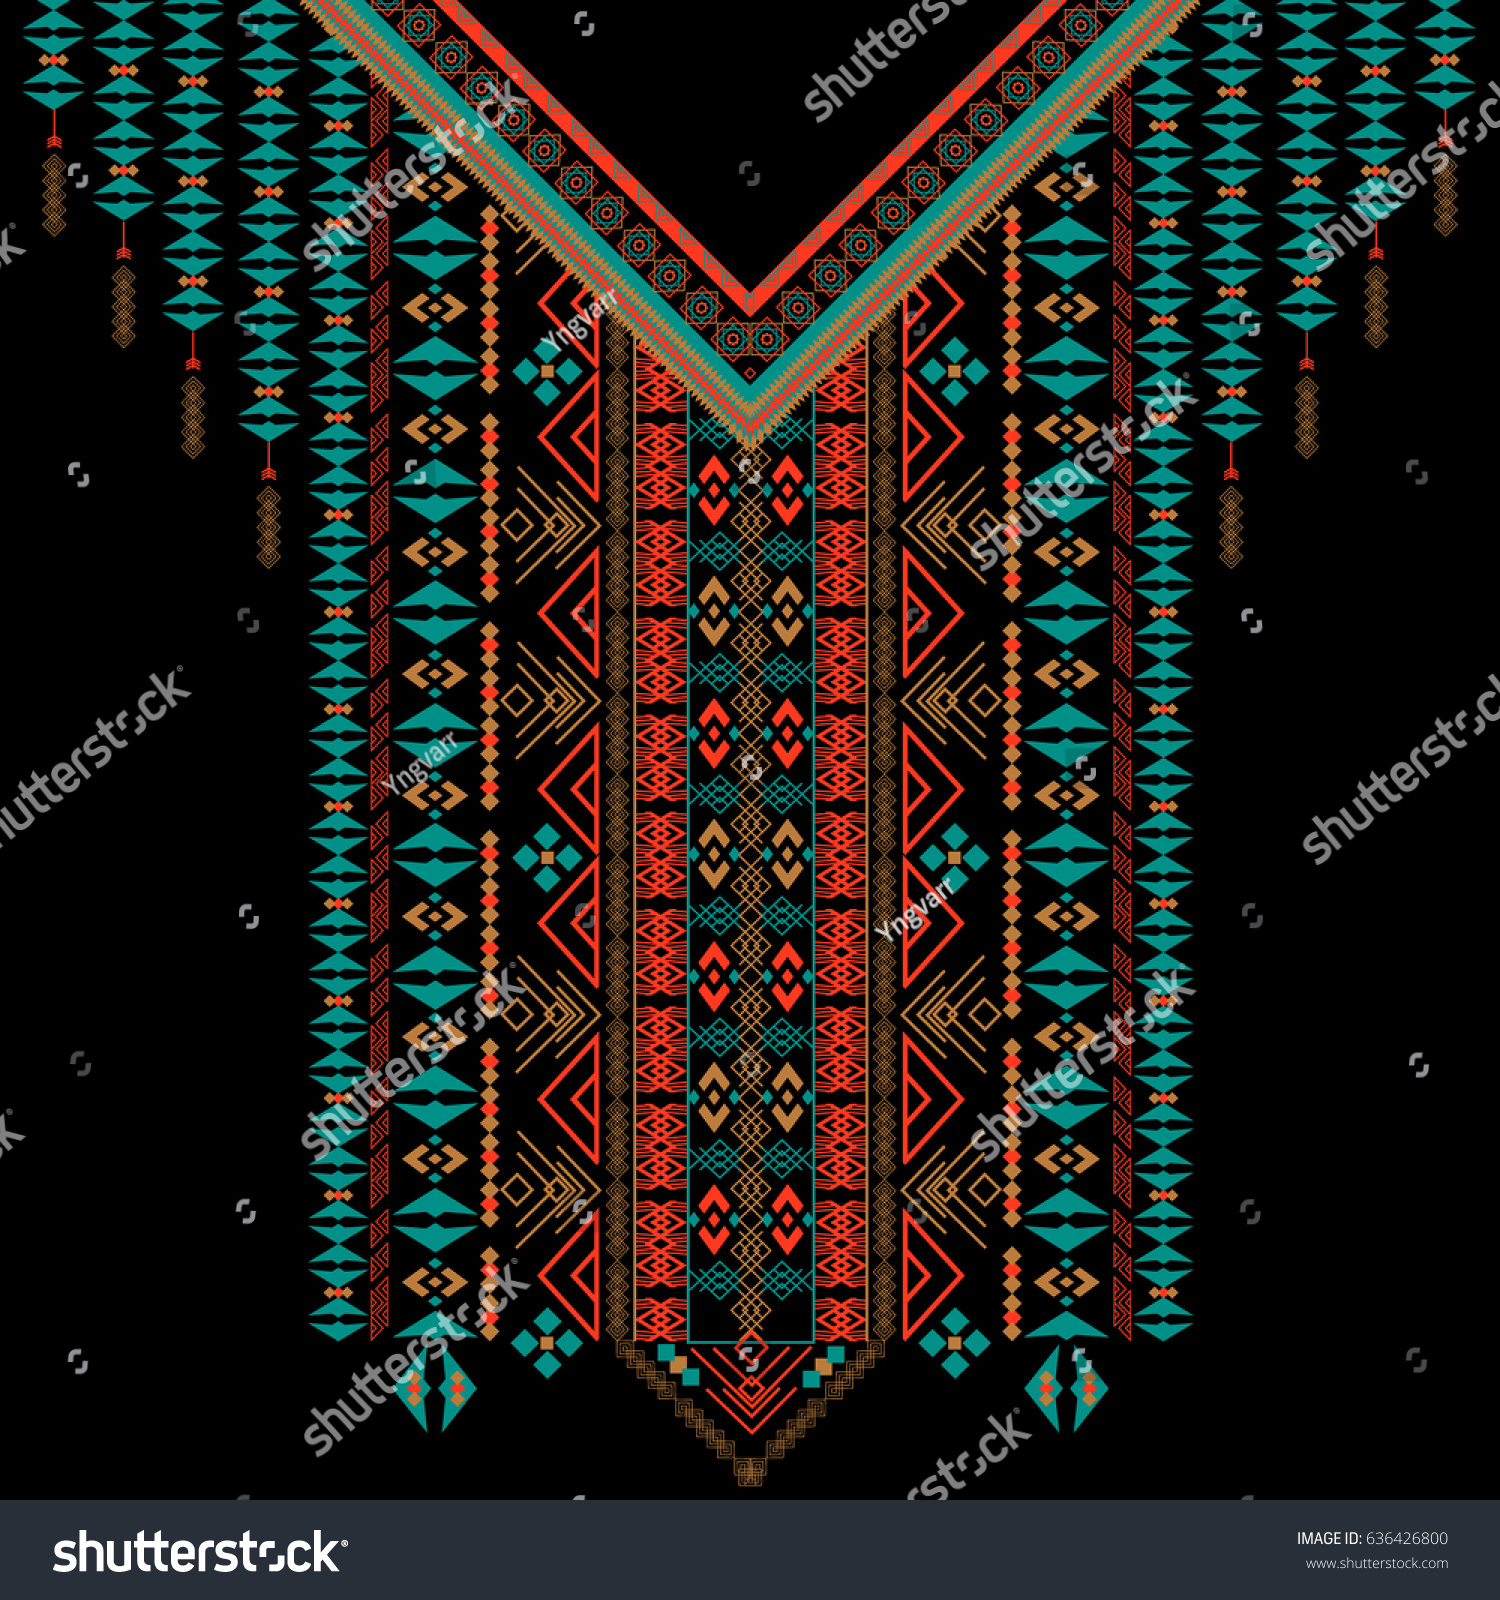 Design t shirt embroidery - Vector Design For Collar Shirts Shirts T Shirt Embroidery Ethnic Geometric Elements